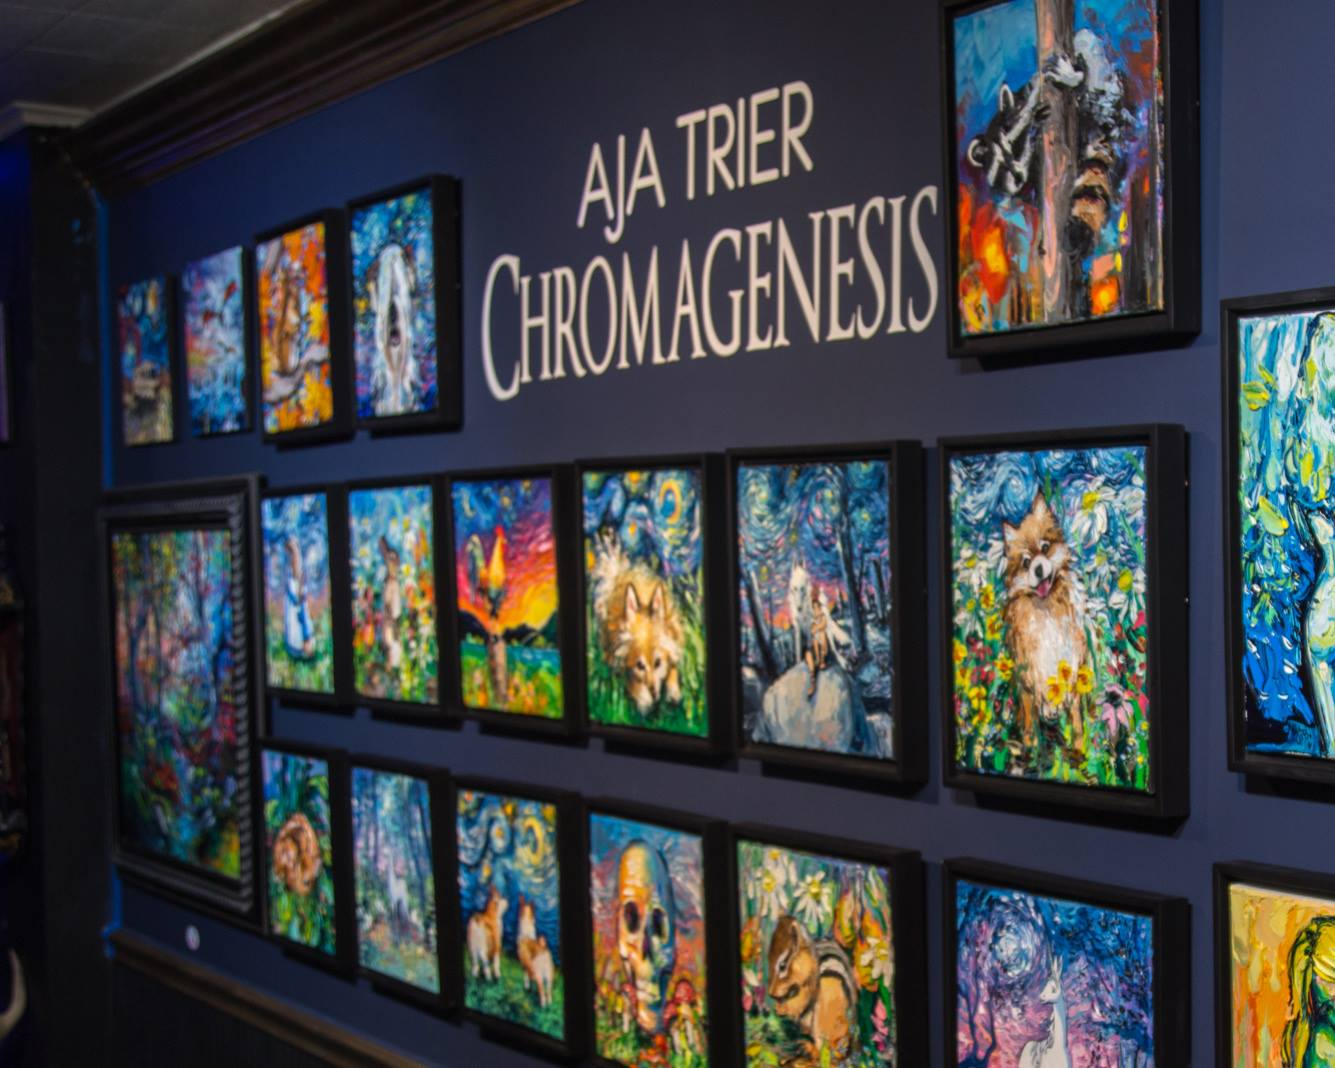 Solo Art Show, Chromagenesis, Future Gallery 2018